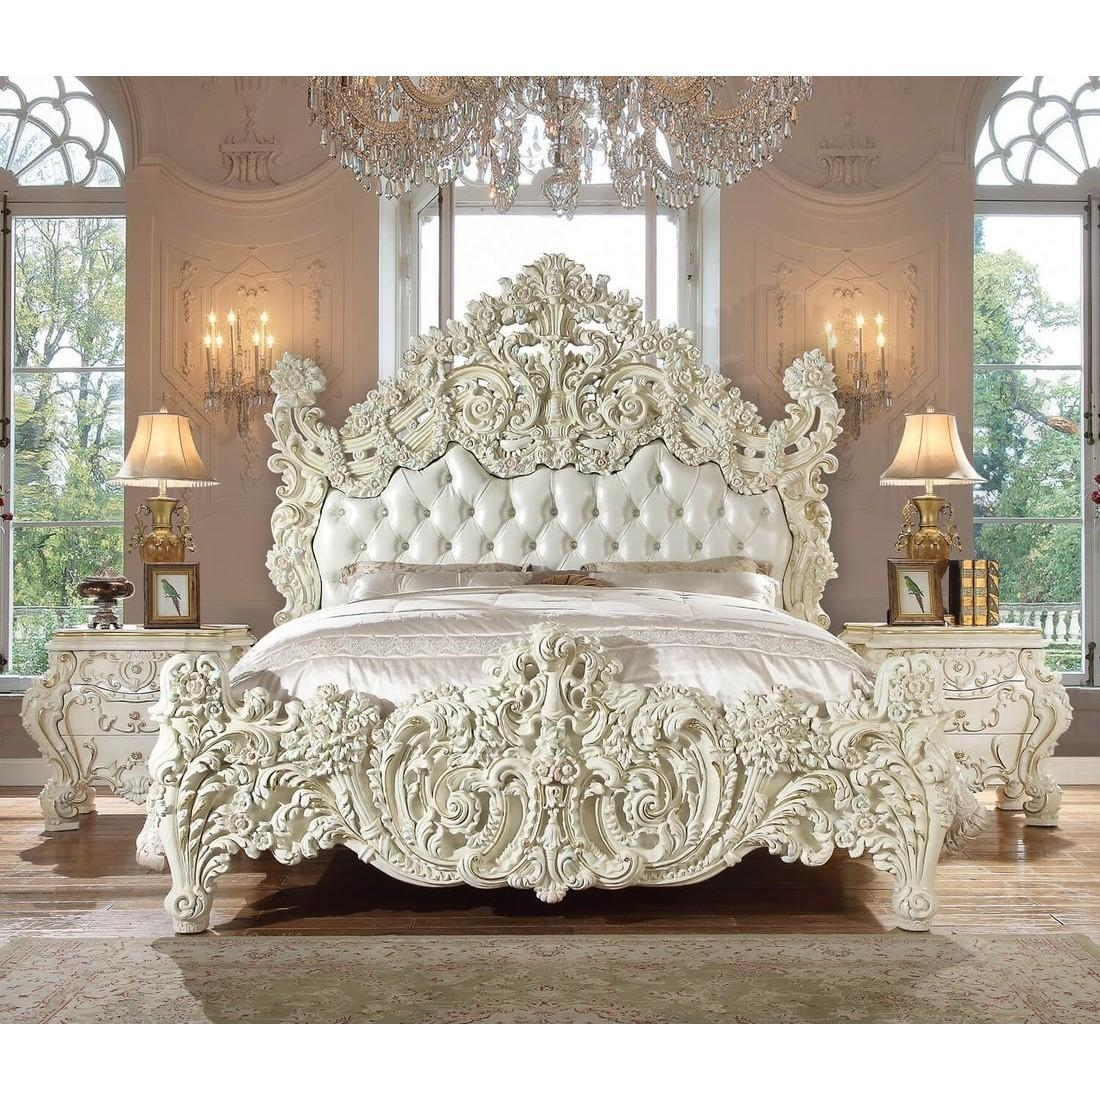 Luxury Glossy White KING Bedroom Set 3P Carved Wood HD-8089 Homey Design Classic